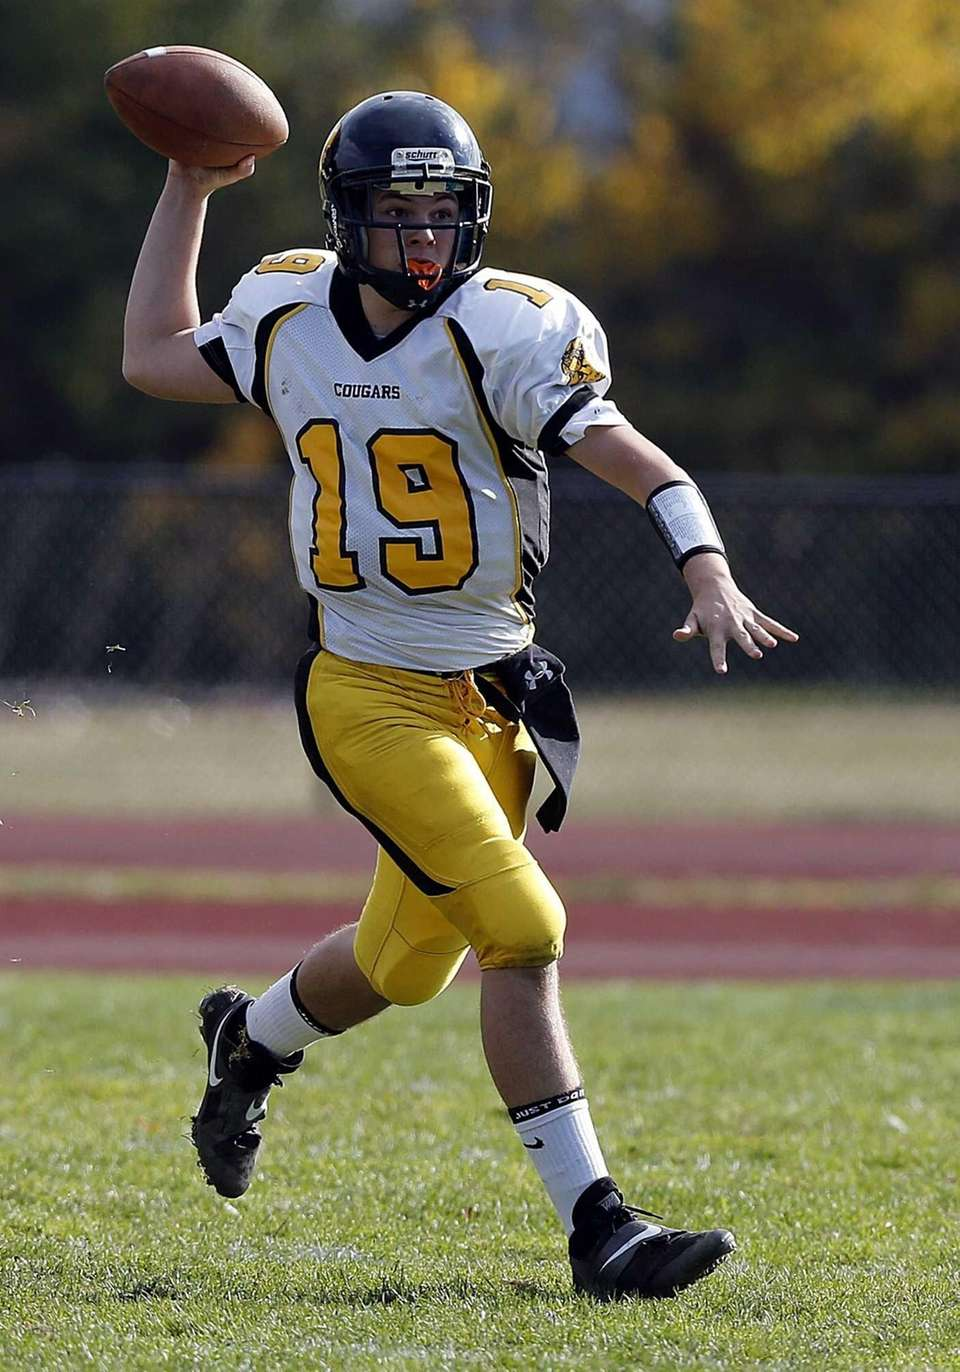 Commack quarterback Robert Paccione looks to pass against